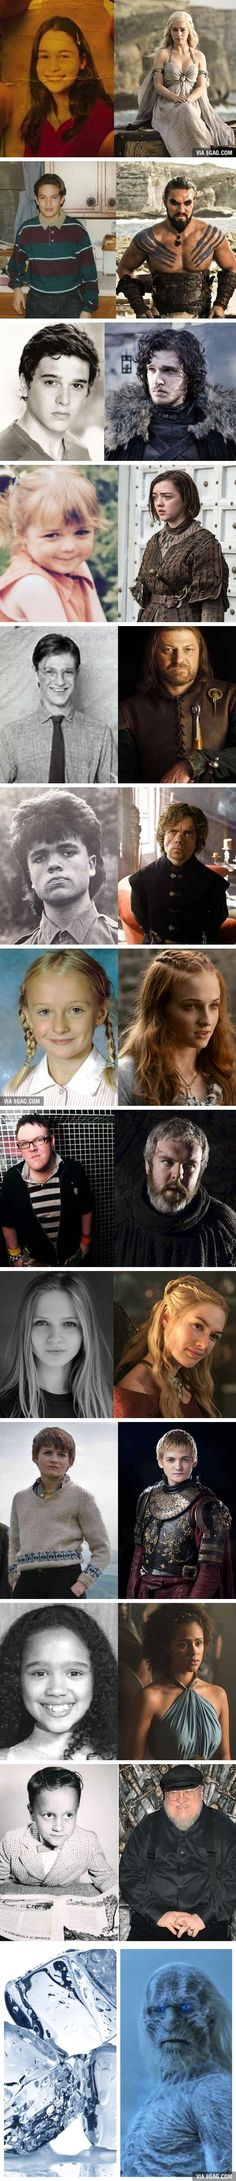 "Childhood photos of the cast of 'Game of Thrones' Fotos aus der Kindheit der Besetzung von ""Game of Thrones"". Casas Game Of Thrones, Game Of Thrones Besetzung, Game Of Thrones Funny, Game Of Throne Lustig, 9gag Funny, Funny Games, Hilarious, My Champion, Kino Film"